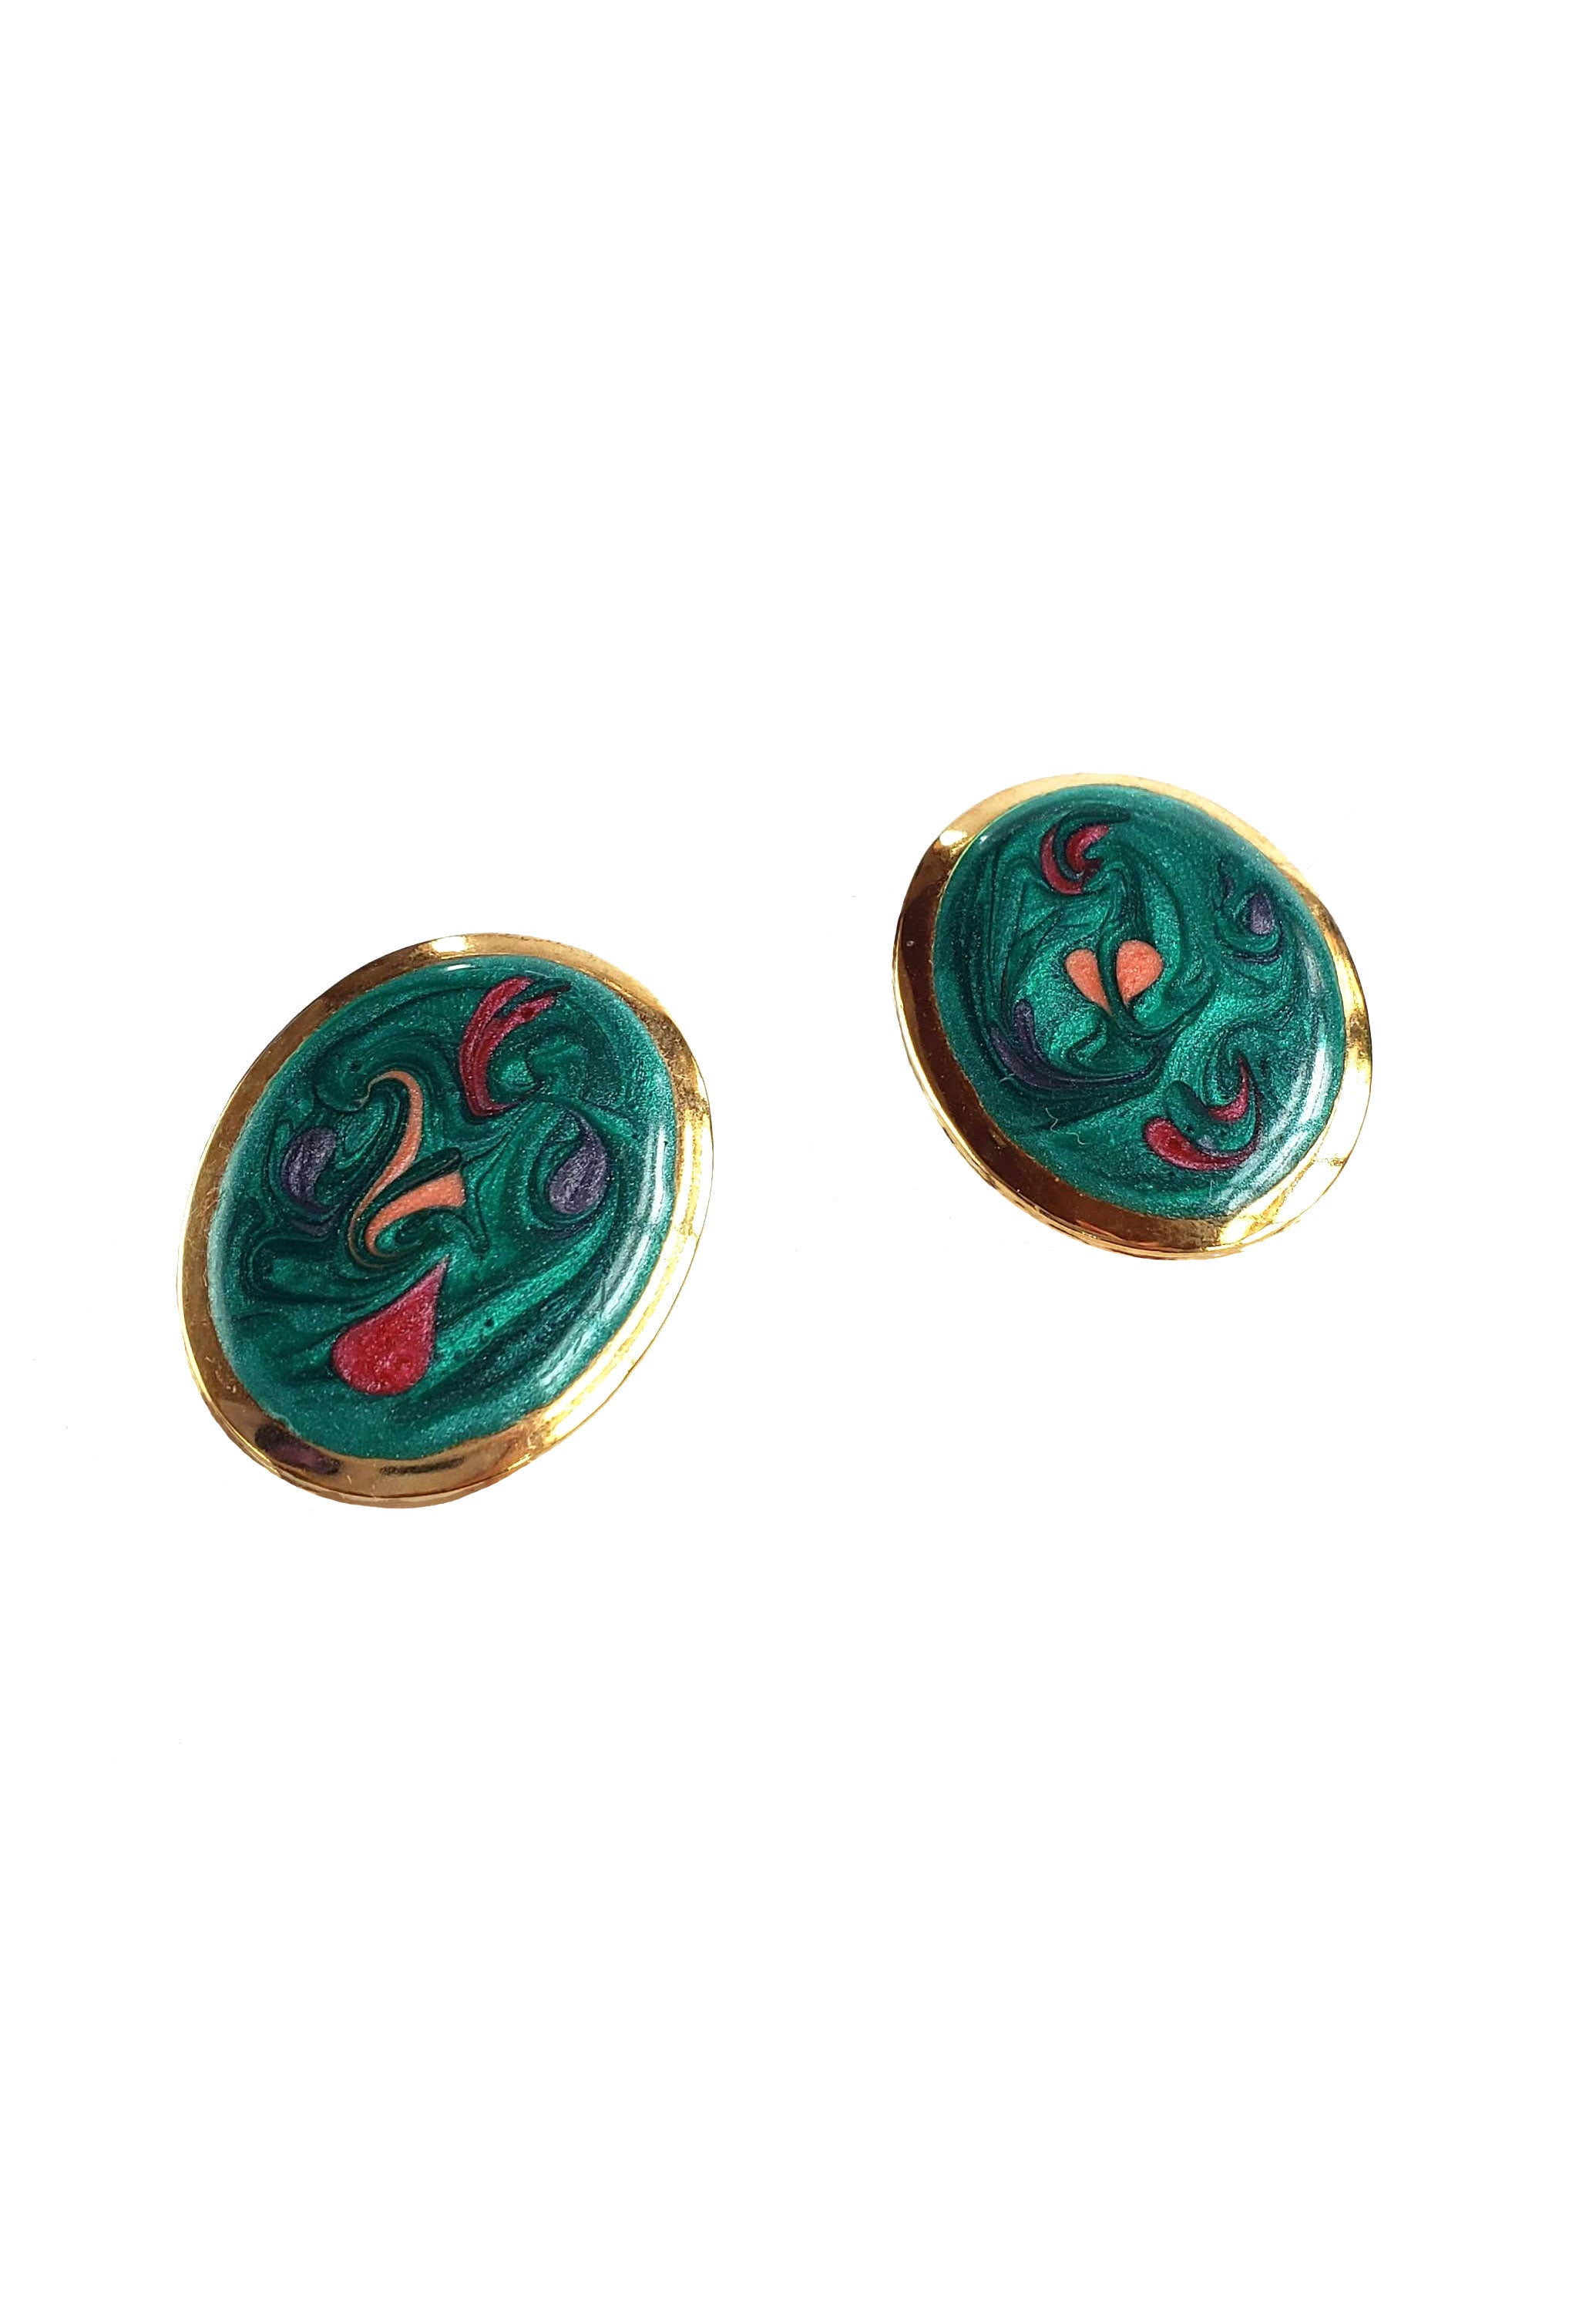 80s Teal Abstract Enamel Earrings